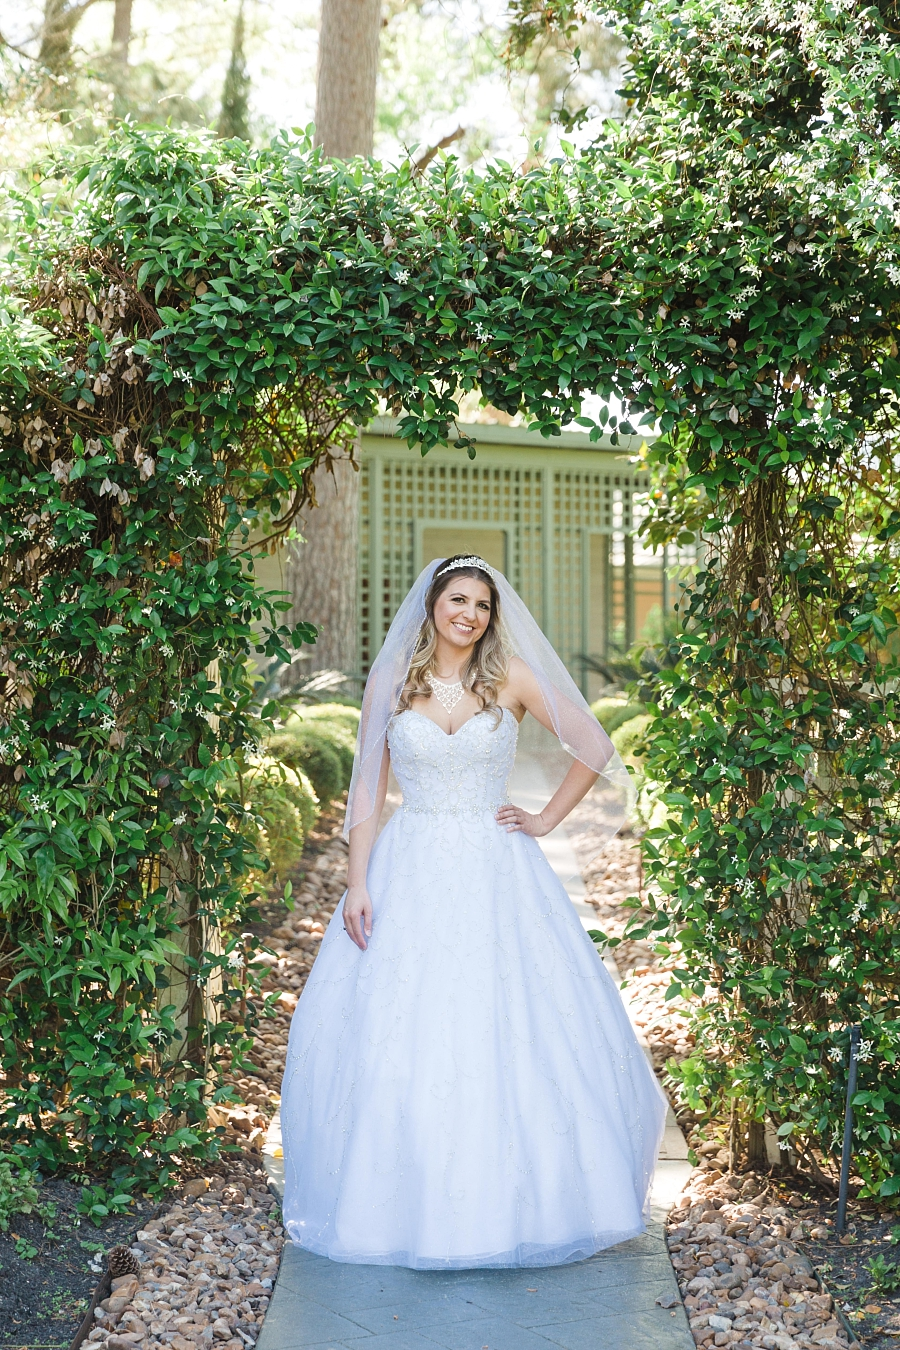 Stacy-Anderson-Photography-Shirley-Acres-Wedding-Photographer_0006.jpg